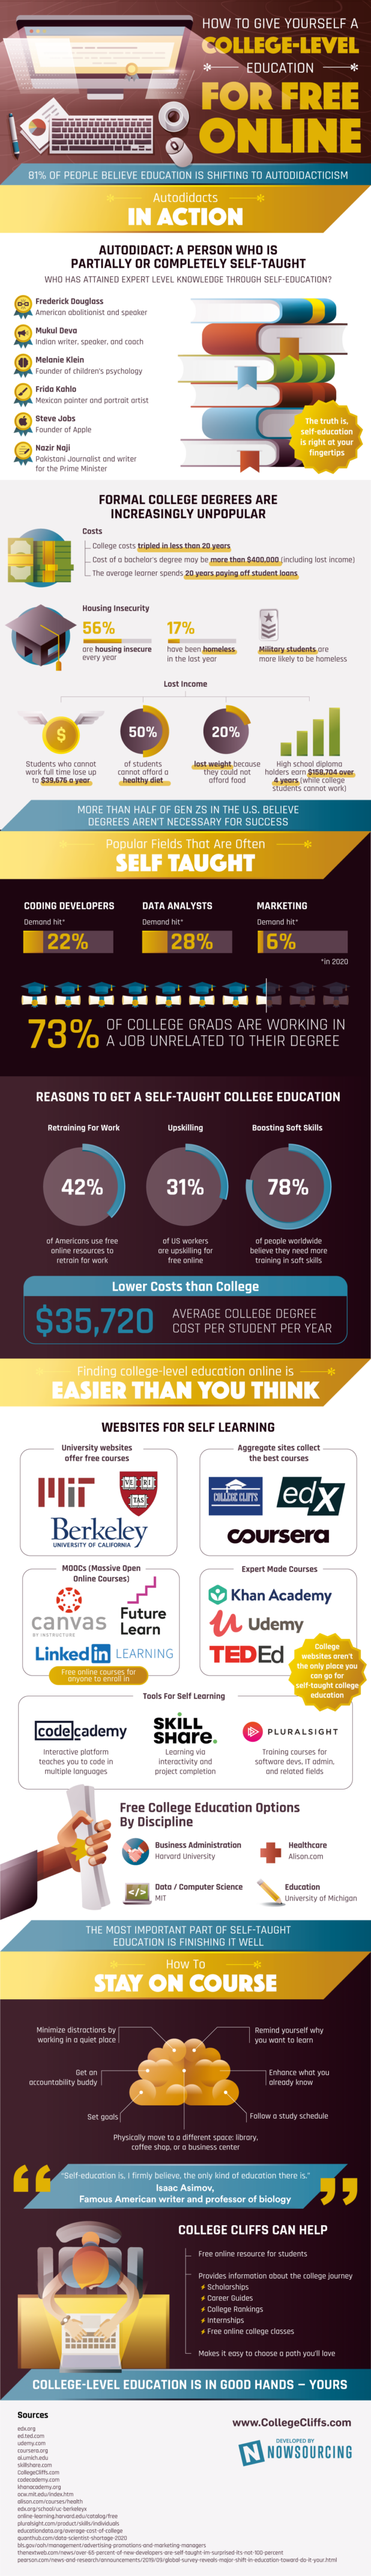 Free Online Education: 7 Tips You Need To Know [Infographic]